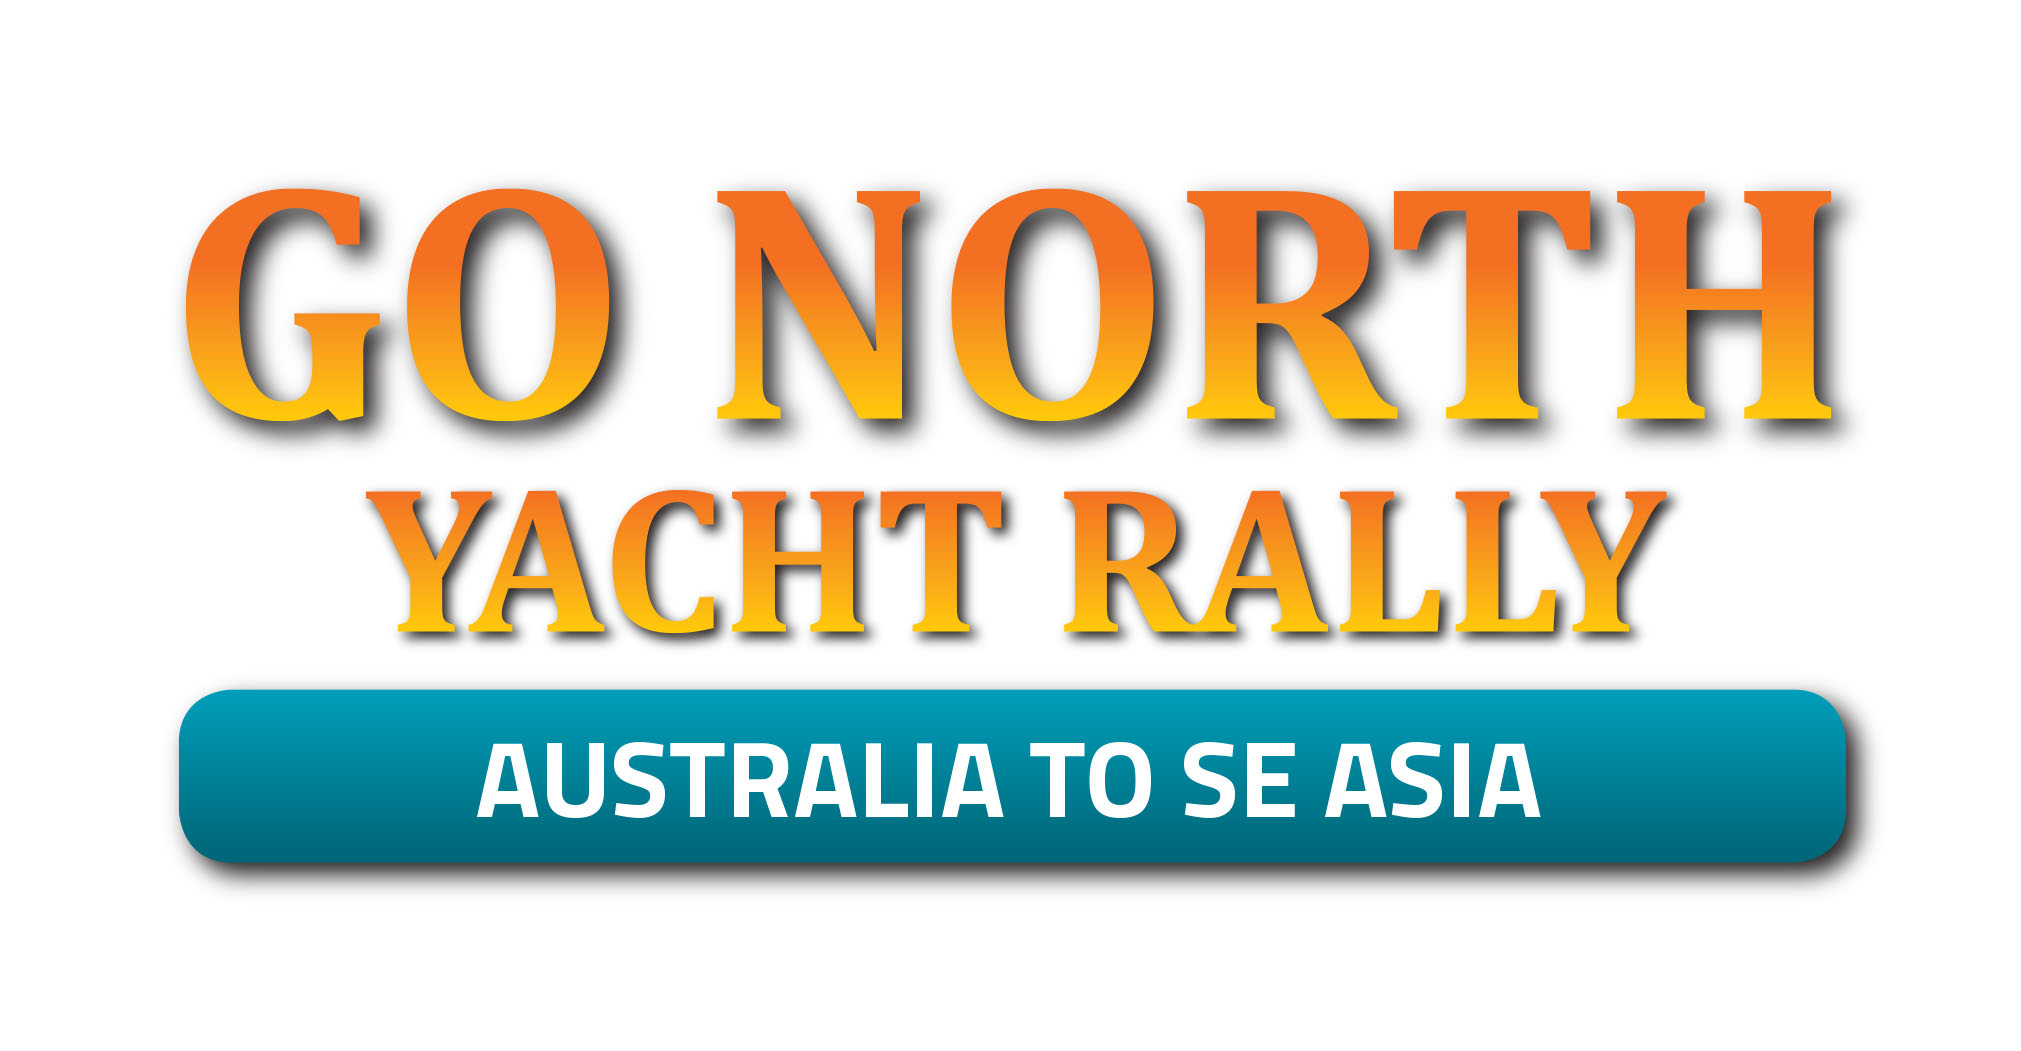 Australia to Indonesia - *Rally date to be confirmed